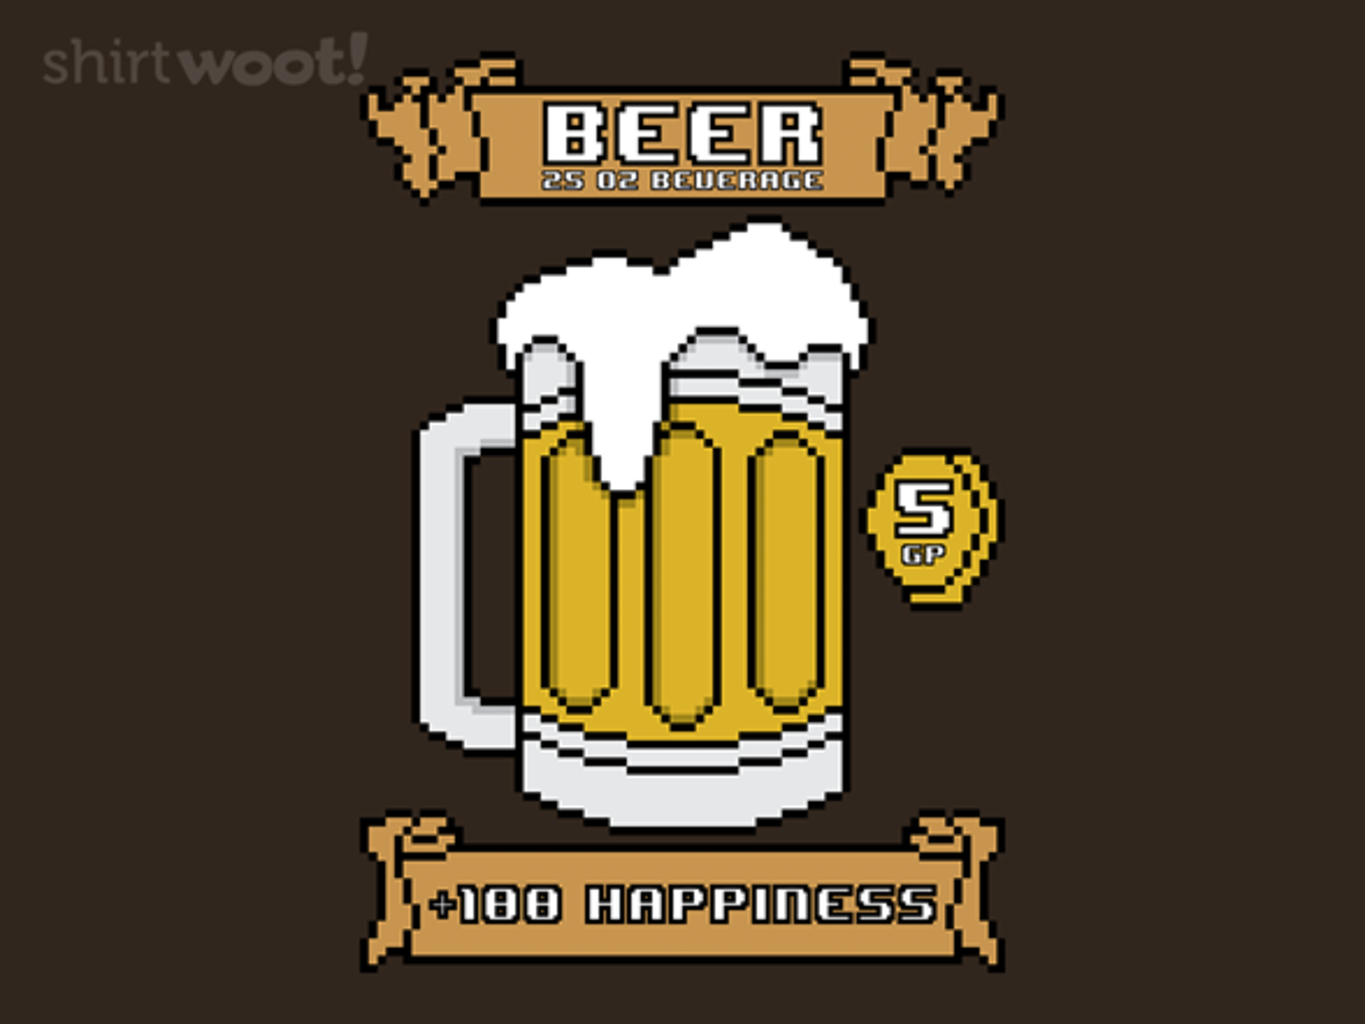 Woot!: Beer RPG - $15.00 + Free shipping